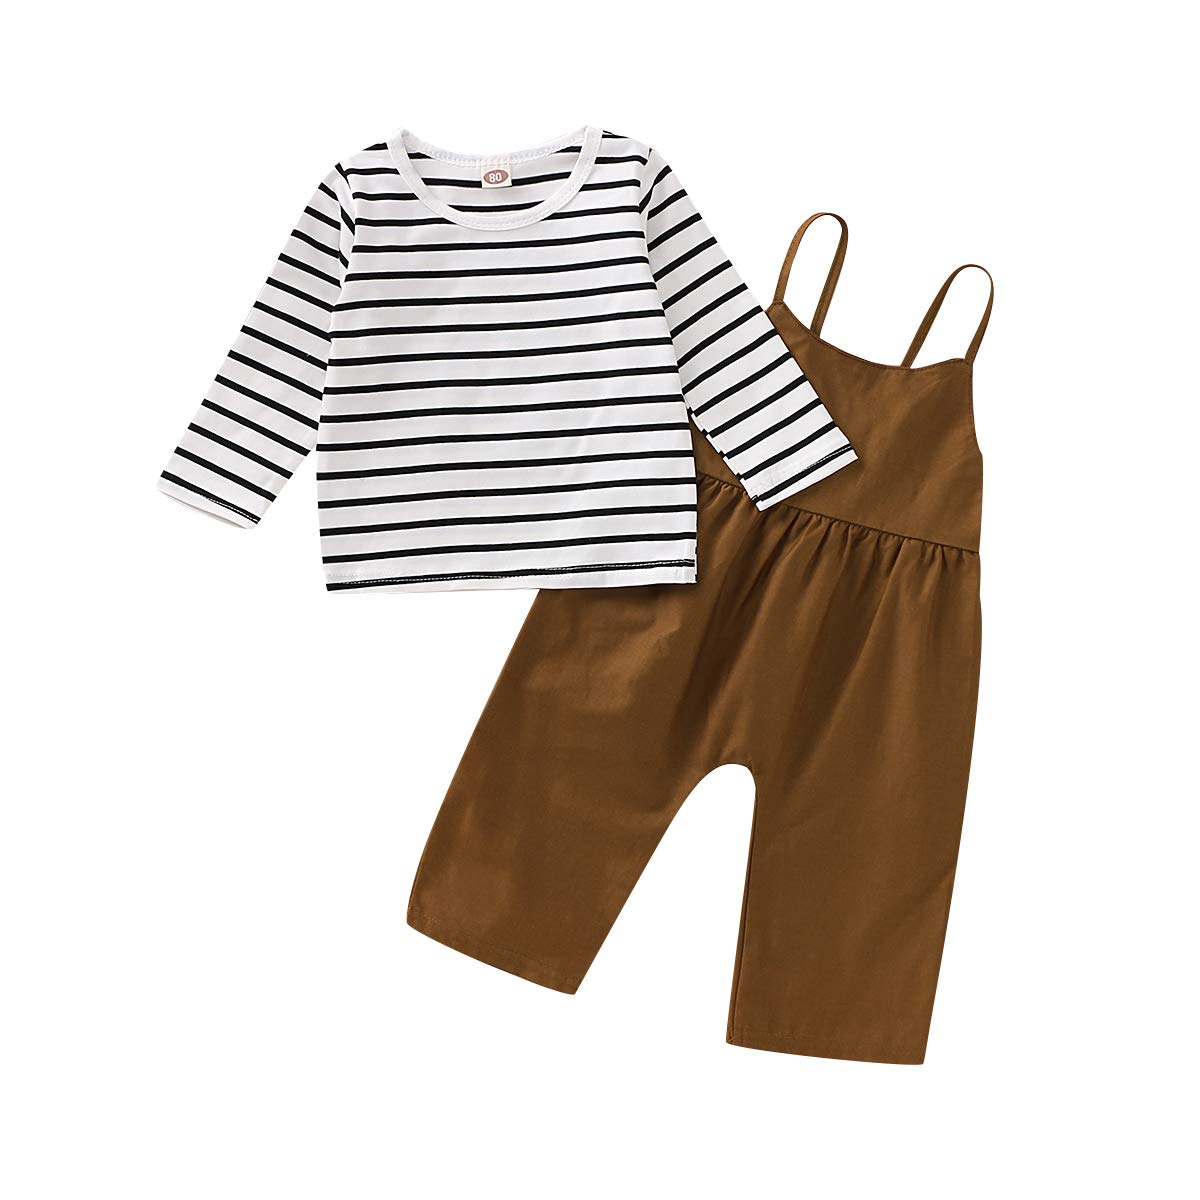 Toddler Baby Girl Pants Sets Stripe Short Sleeve Top + Loose Overalls Summer Outfits 2Pcs Clothes